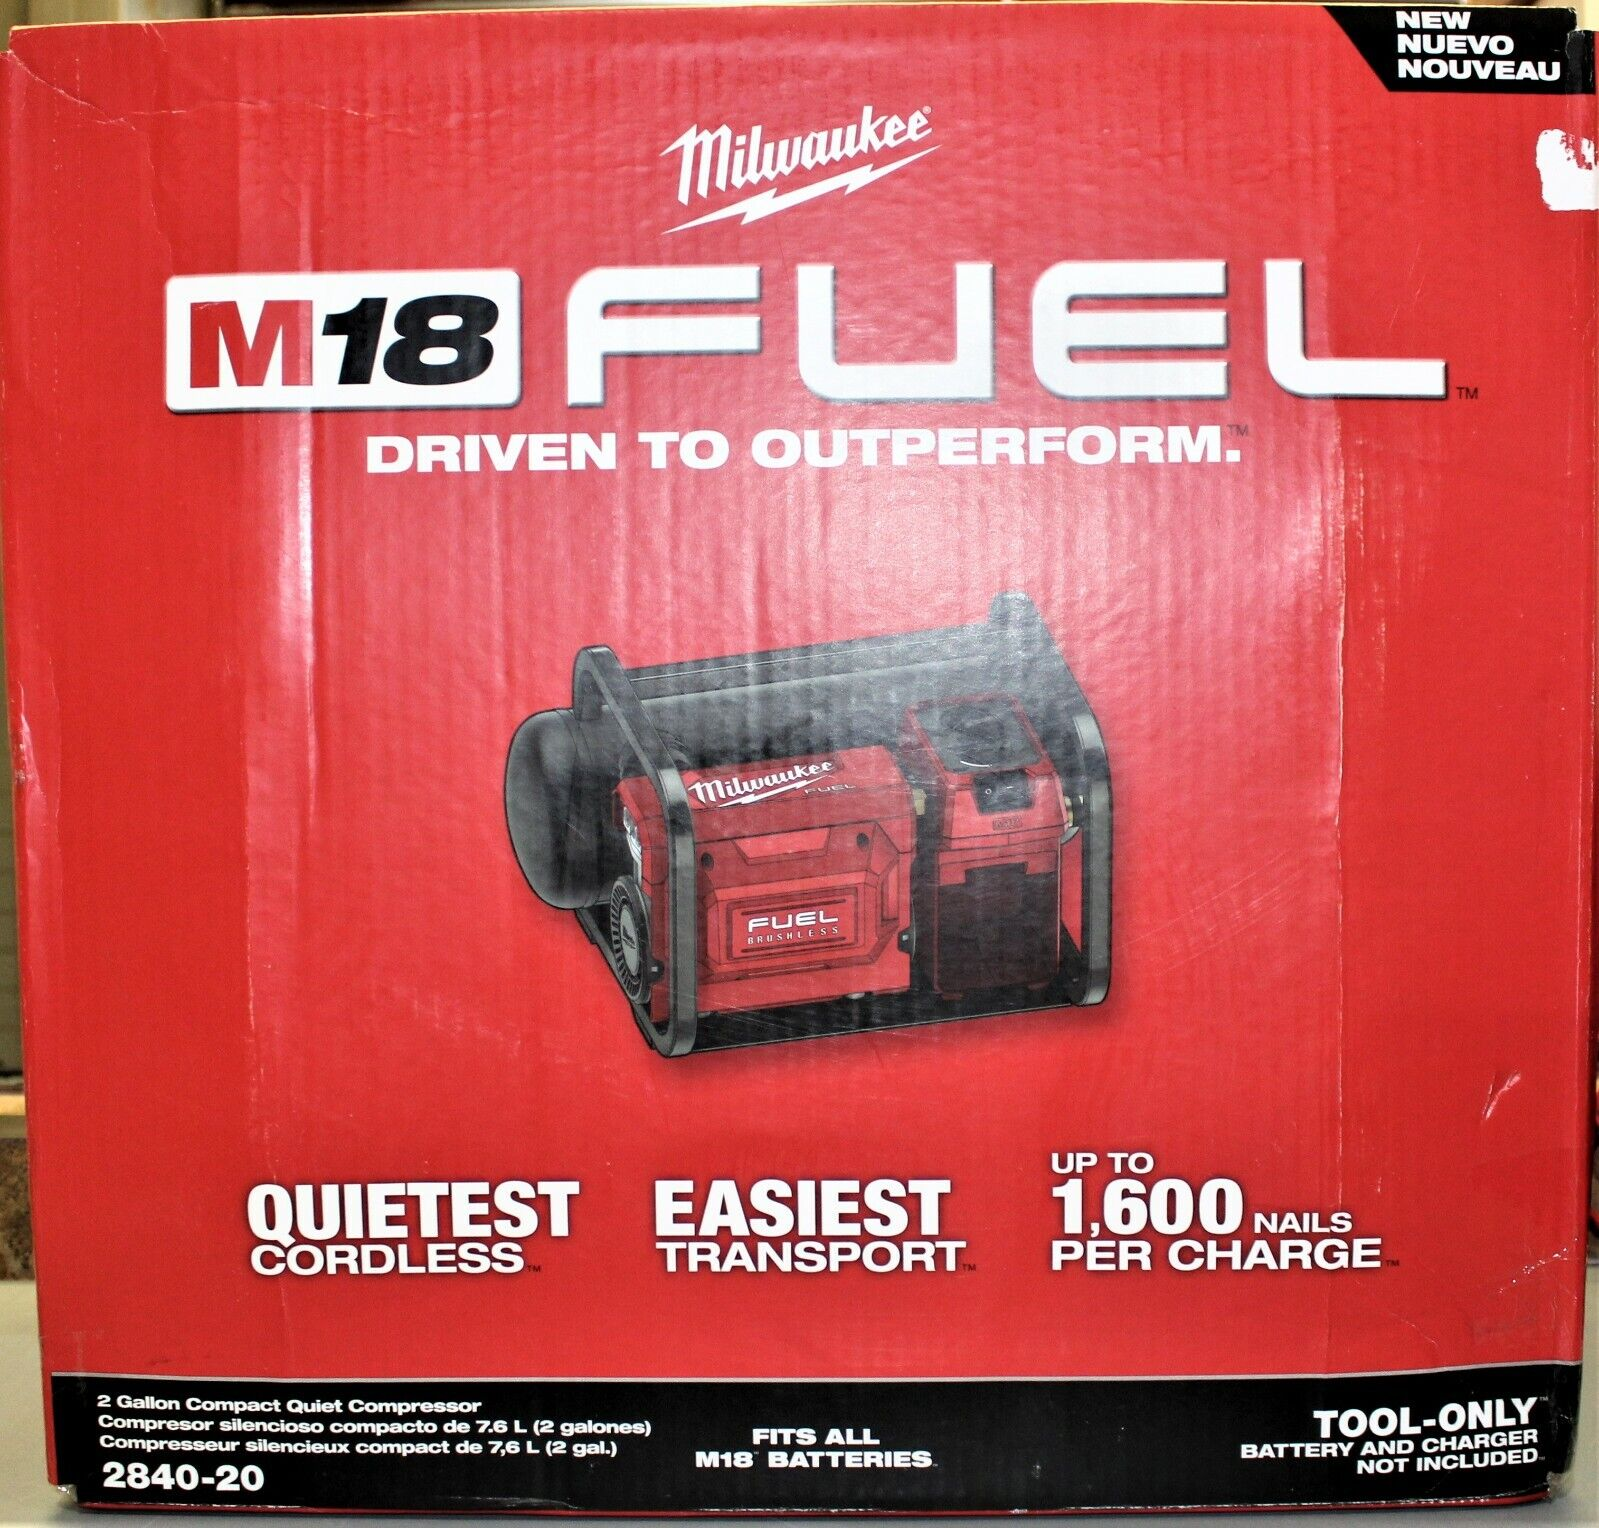 Milwaukee 2840-20 18V FUEL Brushless Cordless 2-Gal Compact Quiet Compressor. Buy it now for 329.99